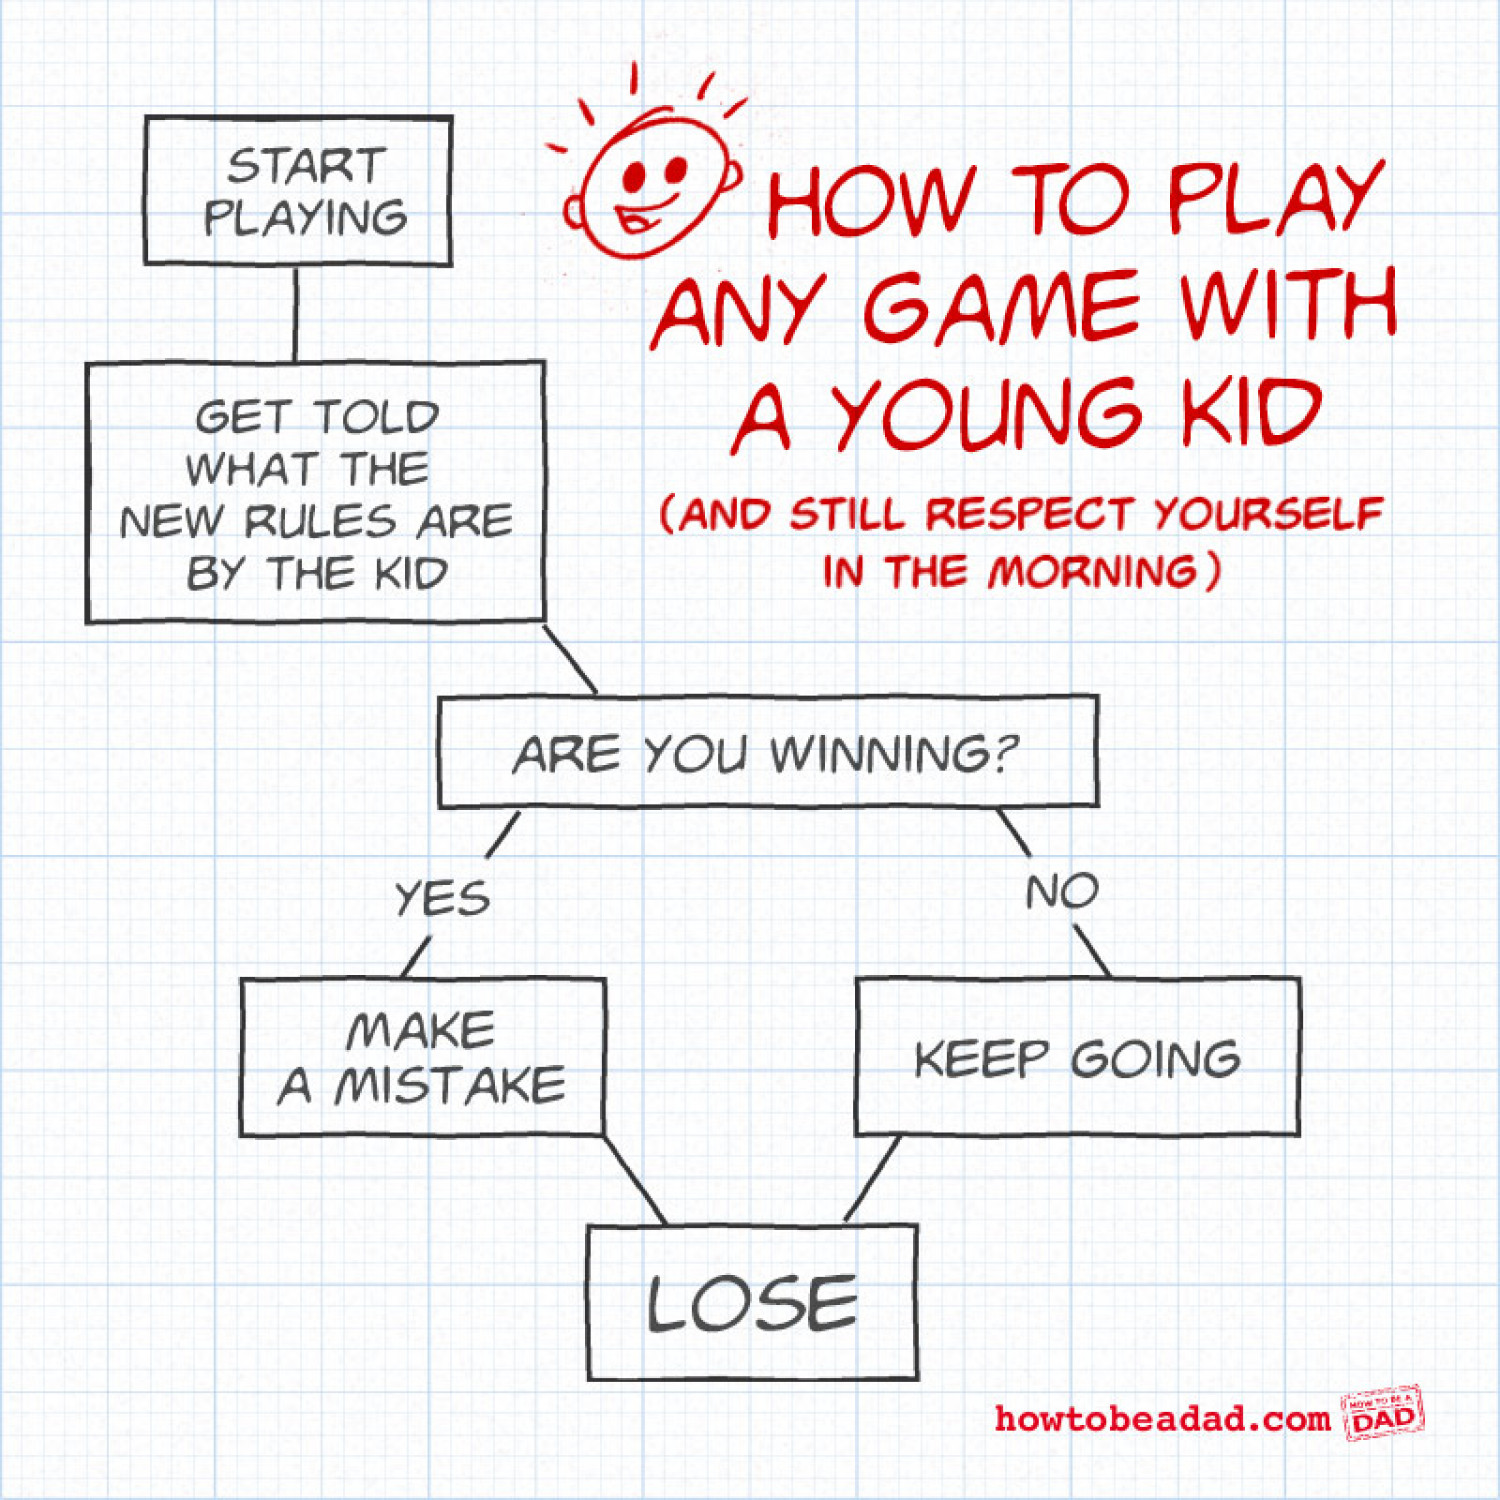 How to Play The Game Infographic